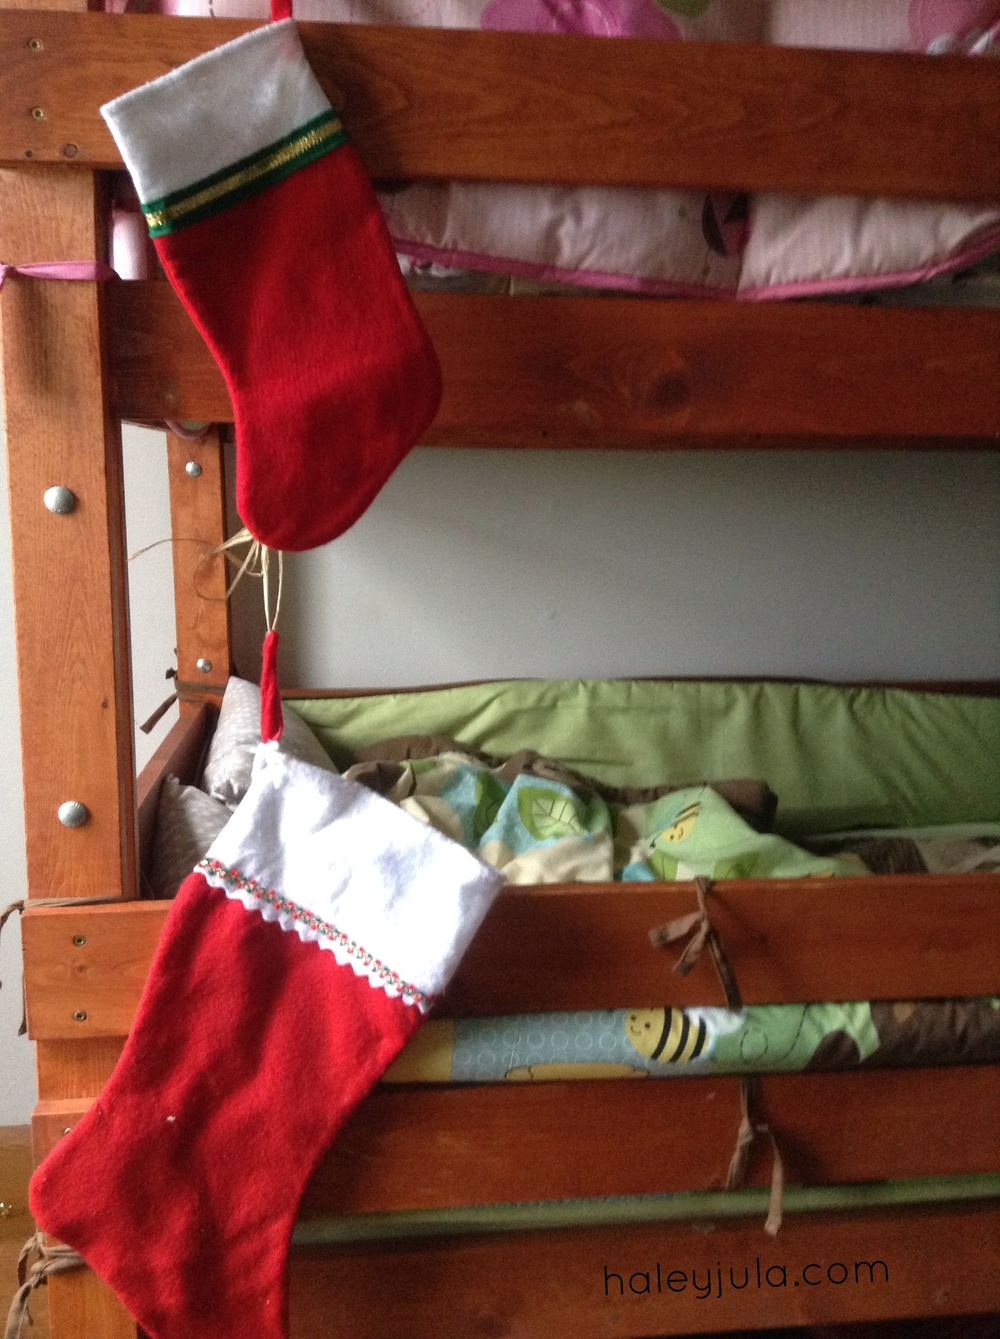 Bunk bed stockings